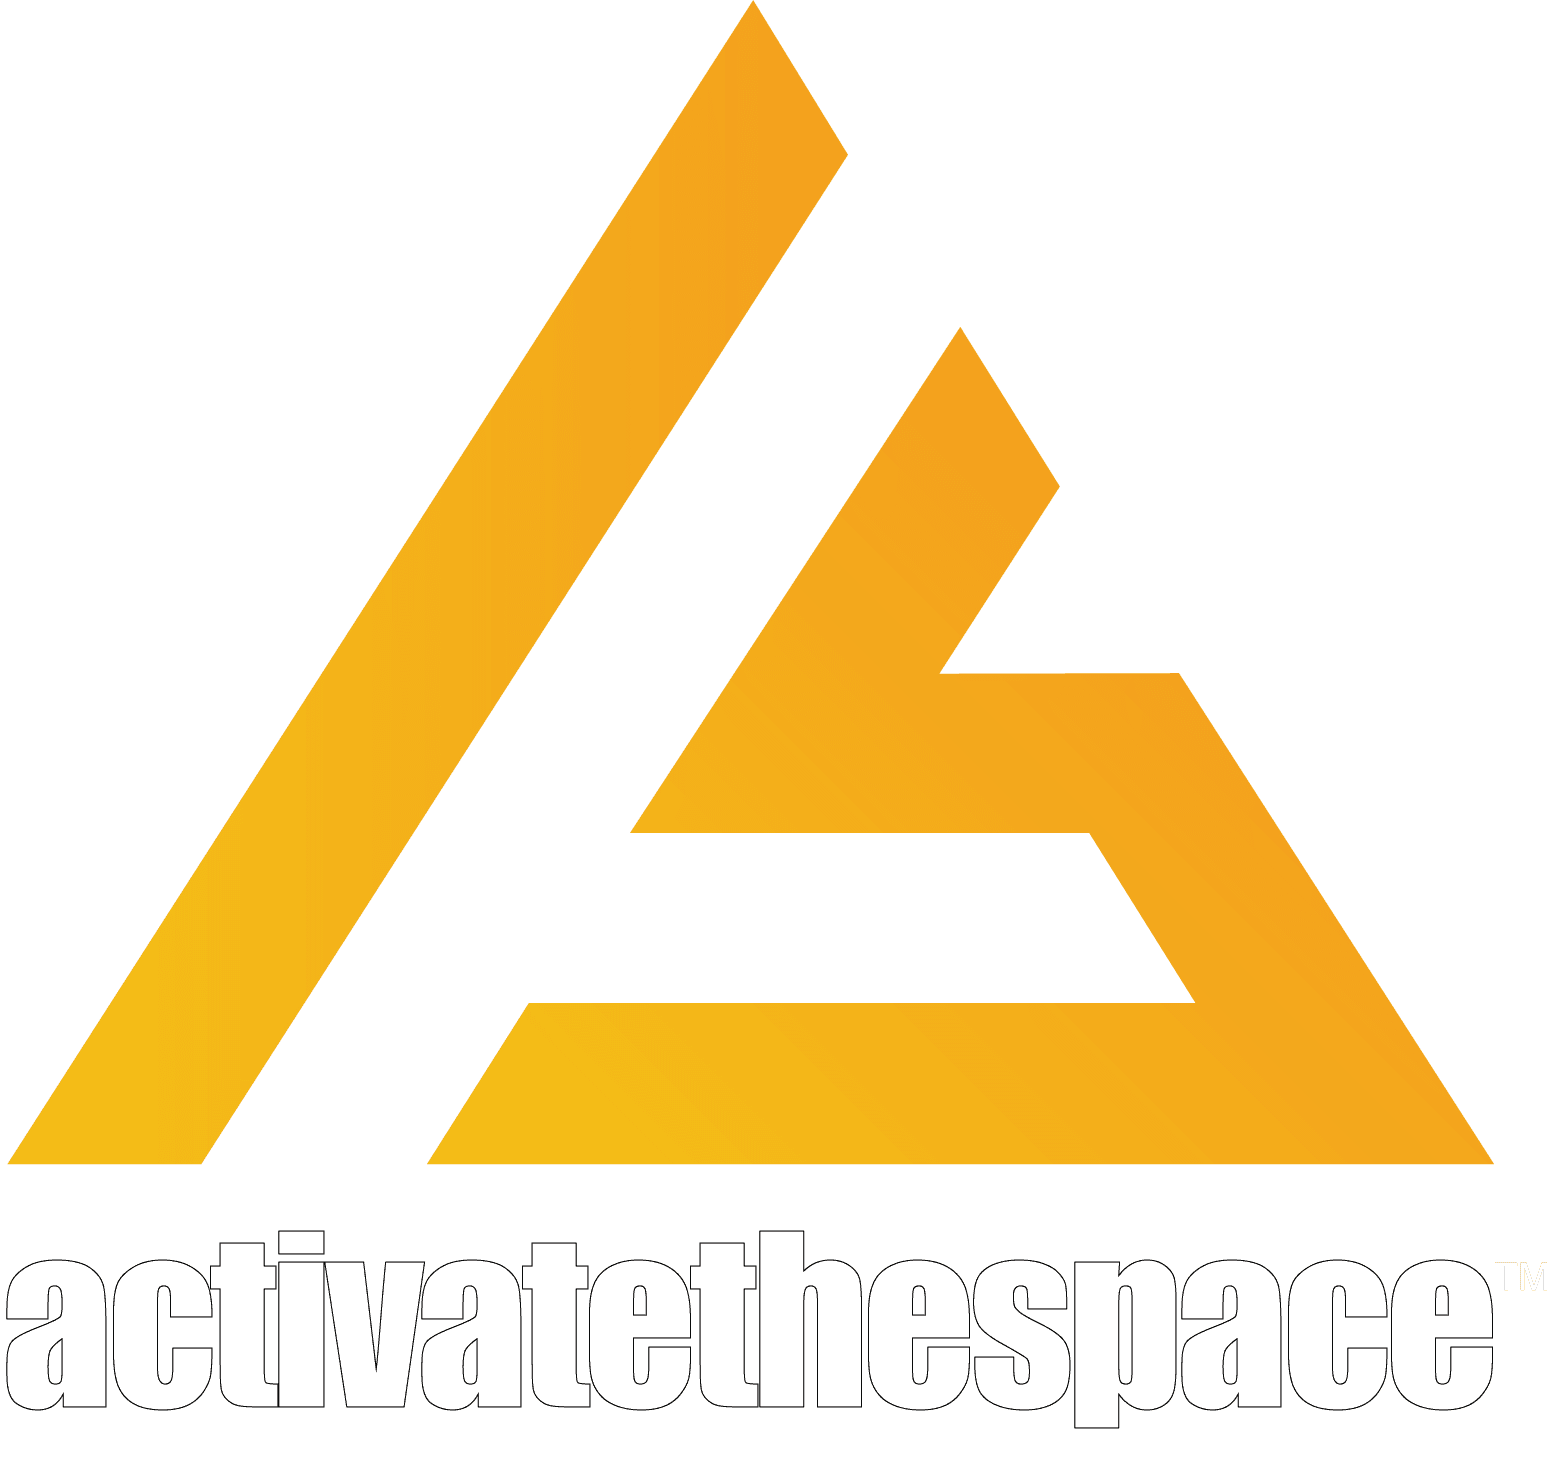 Activate The Space